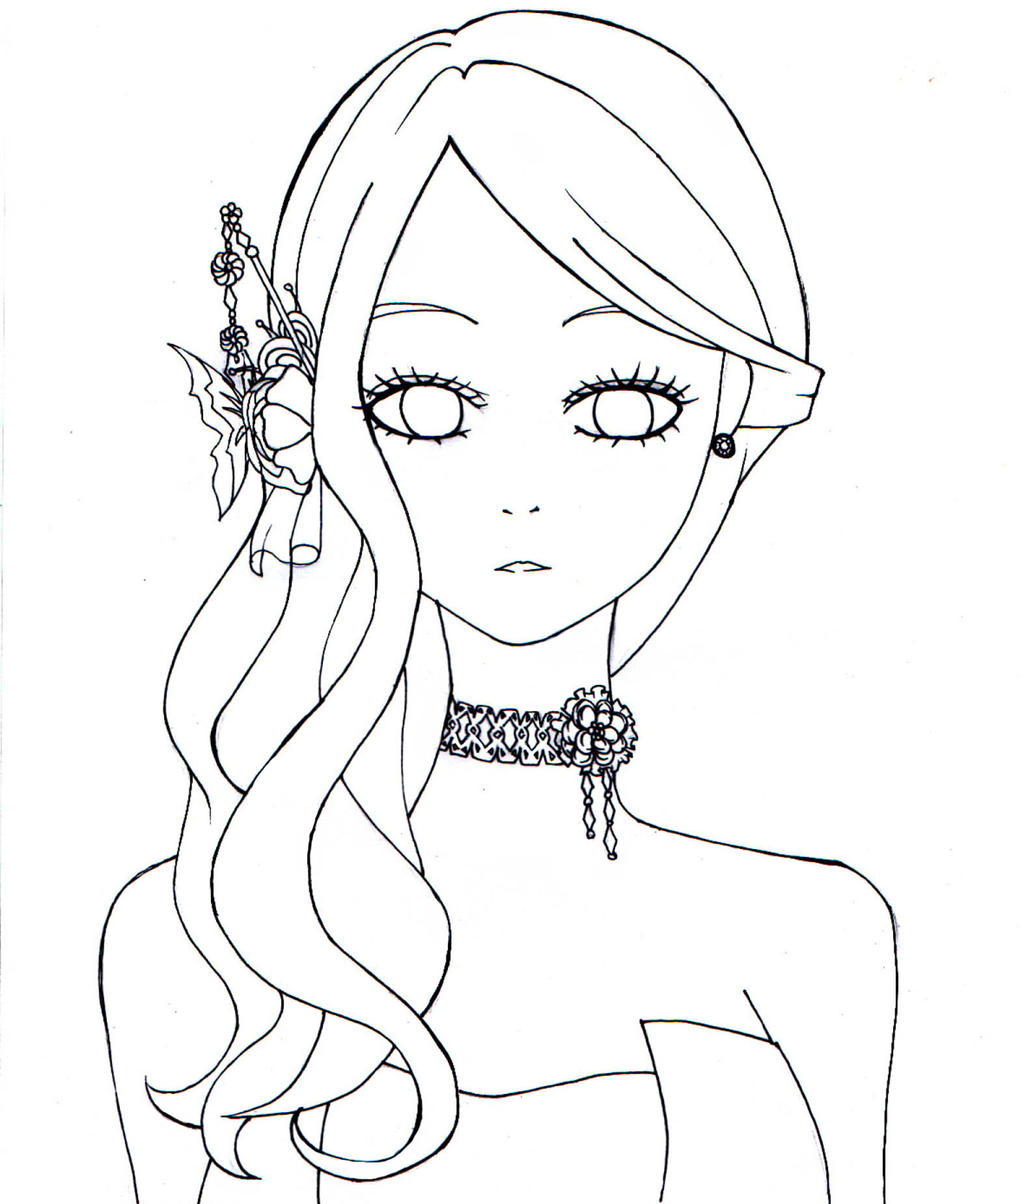 Line Drawing From Photo : My fair lady adeiona free line art by chubbycheeksmylove